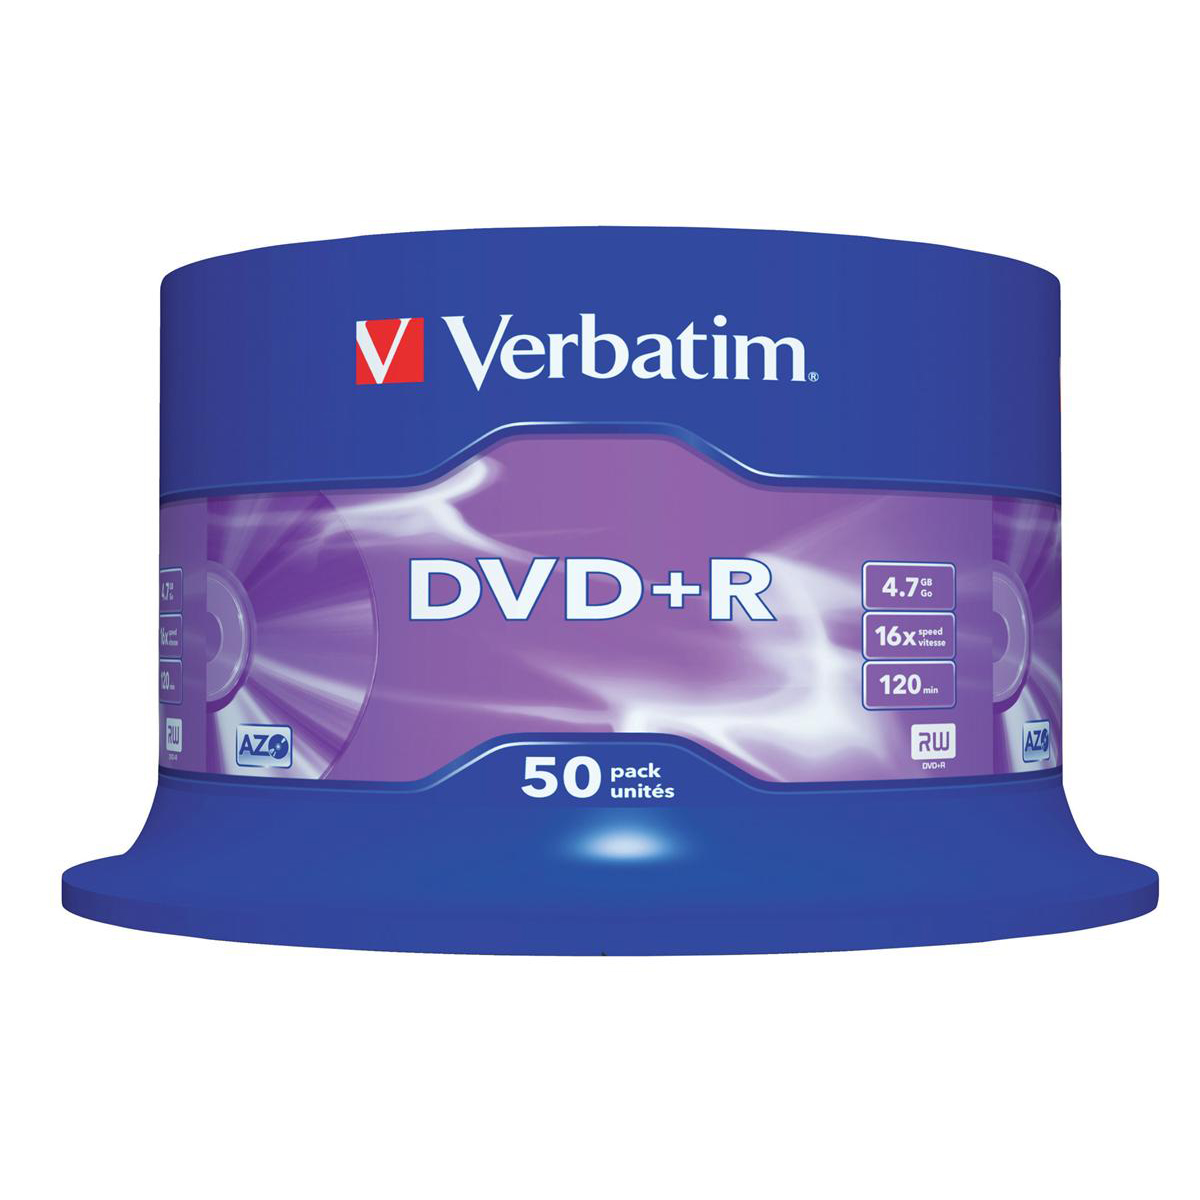 Image for Verbatim DVD+R Recordable Disk Write-once Spindle 16x Speed 120min 4.7Gb Ref 43550 [Pack 50]